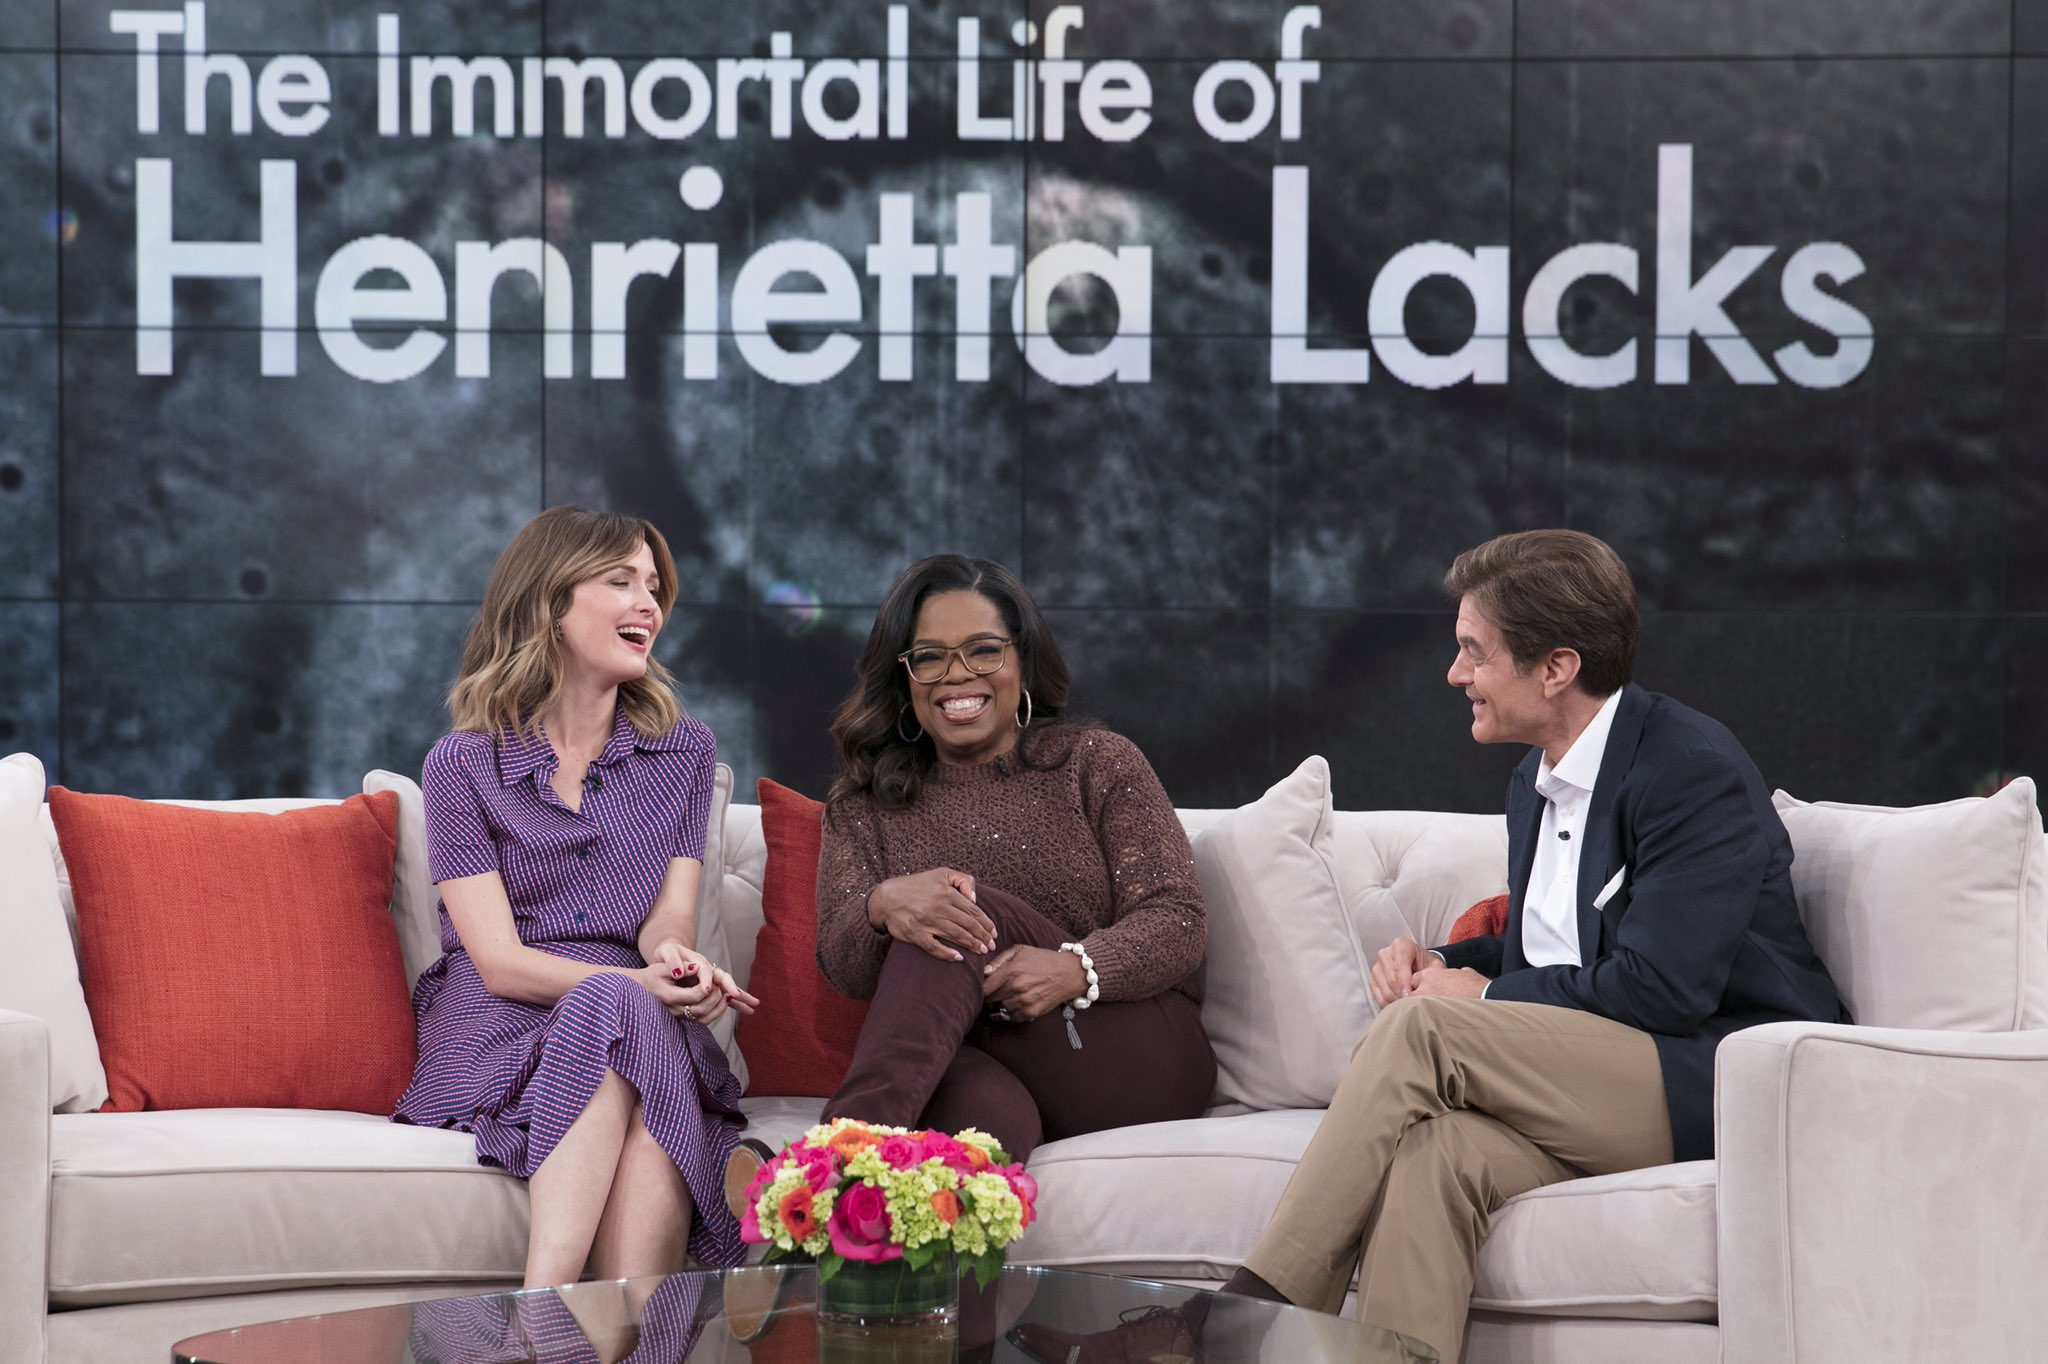 Talkin with @DrOz today about my current favorite subject.. #HenriettaLacks on @HBO this Saturday. https://t.co/ssnGE2i5Im